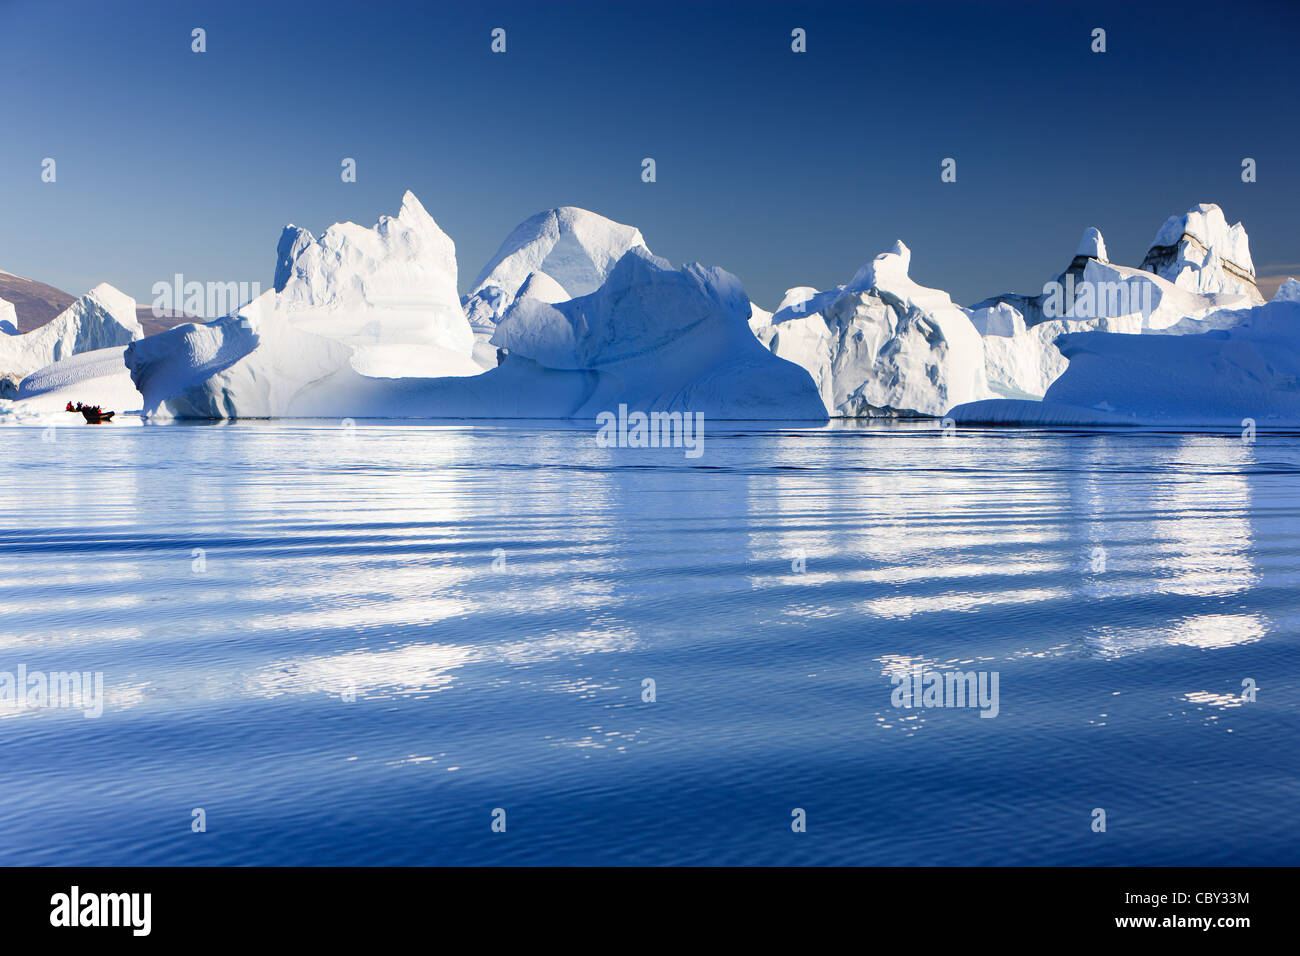 Cruising between the icebergs at Røde Ø, Scoresby sund, Greenland Stock Photo